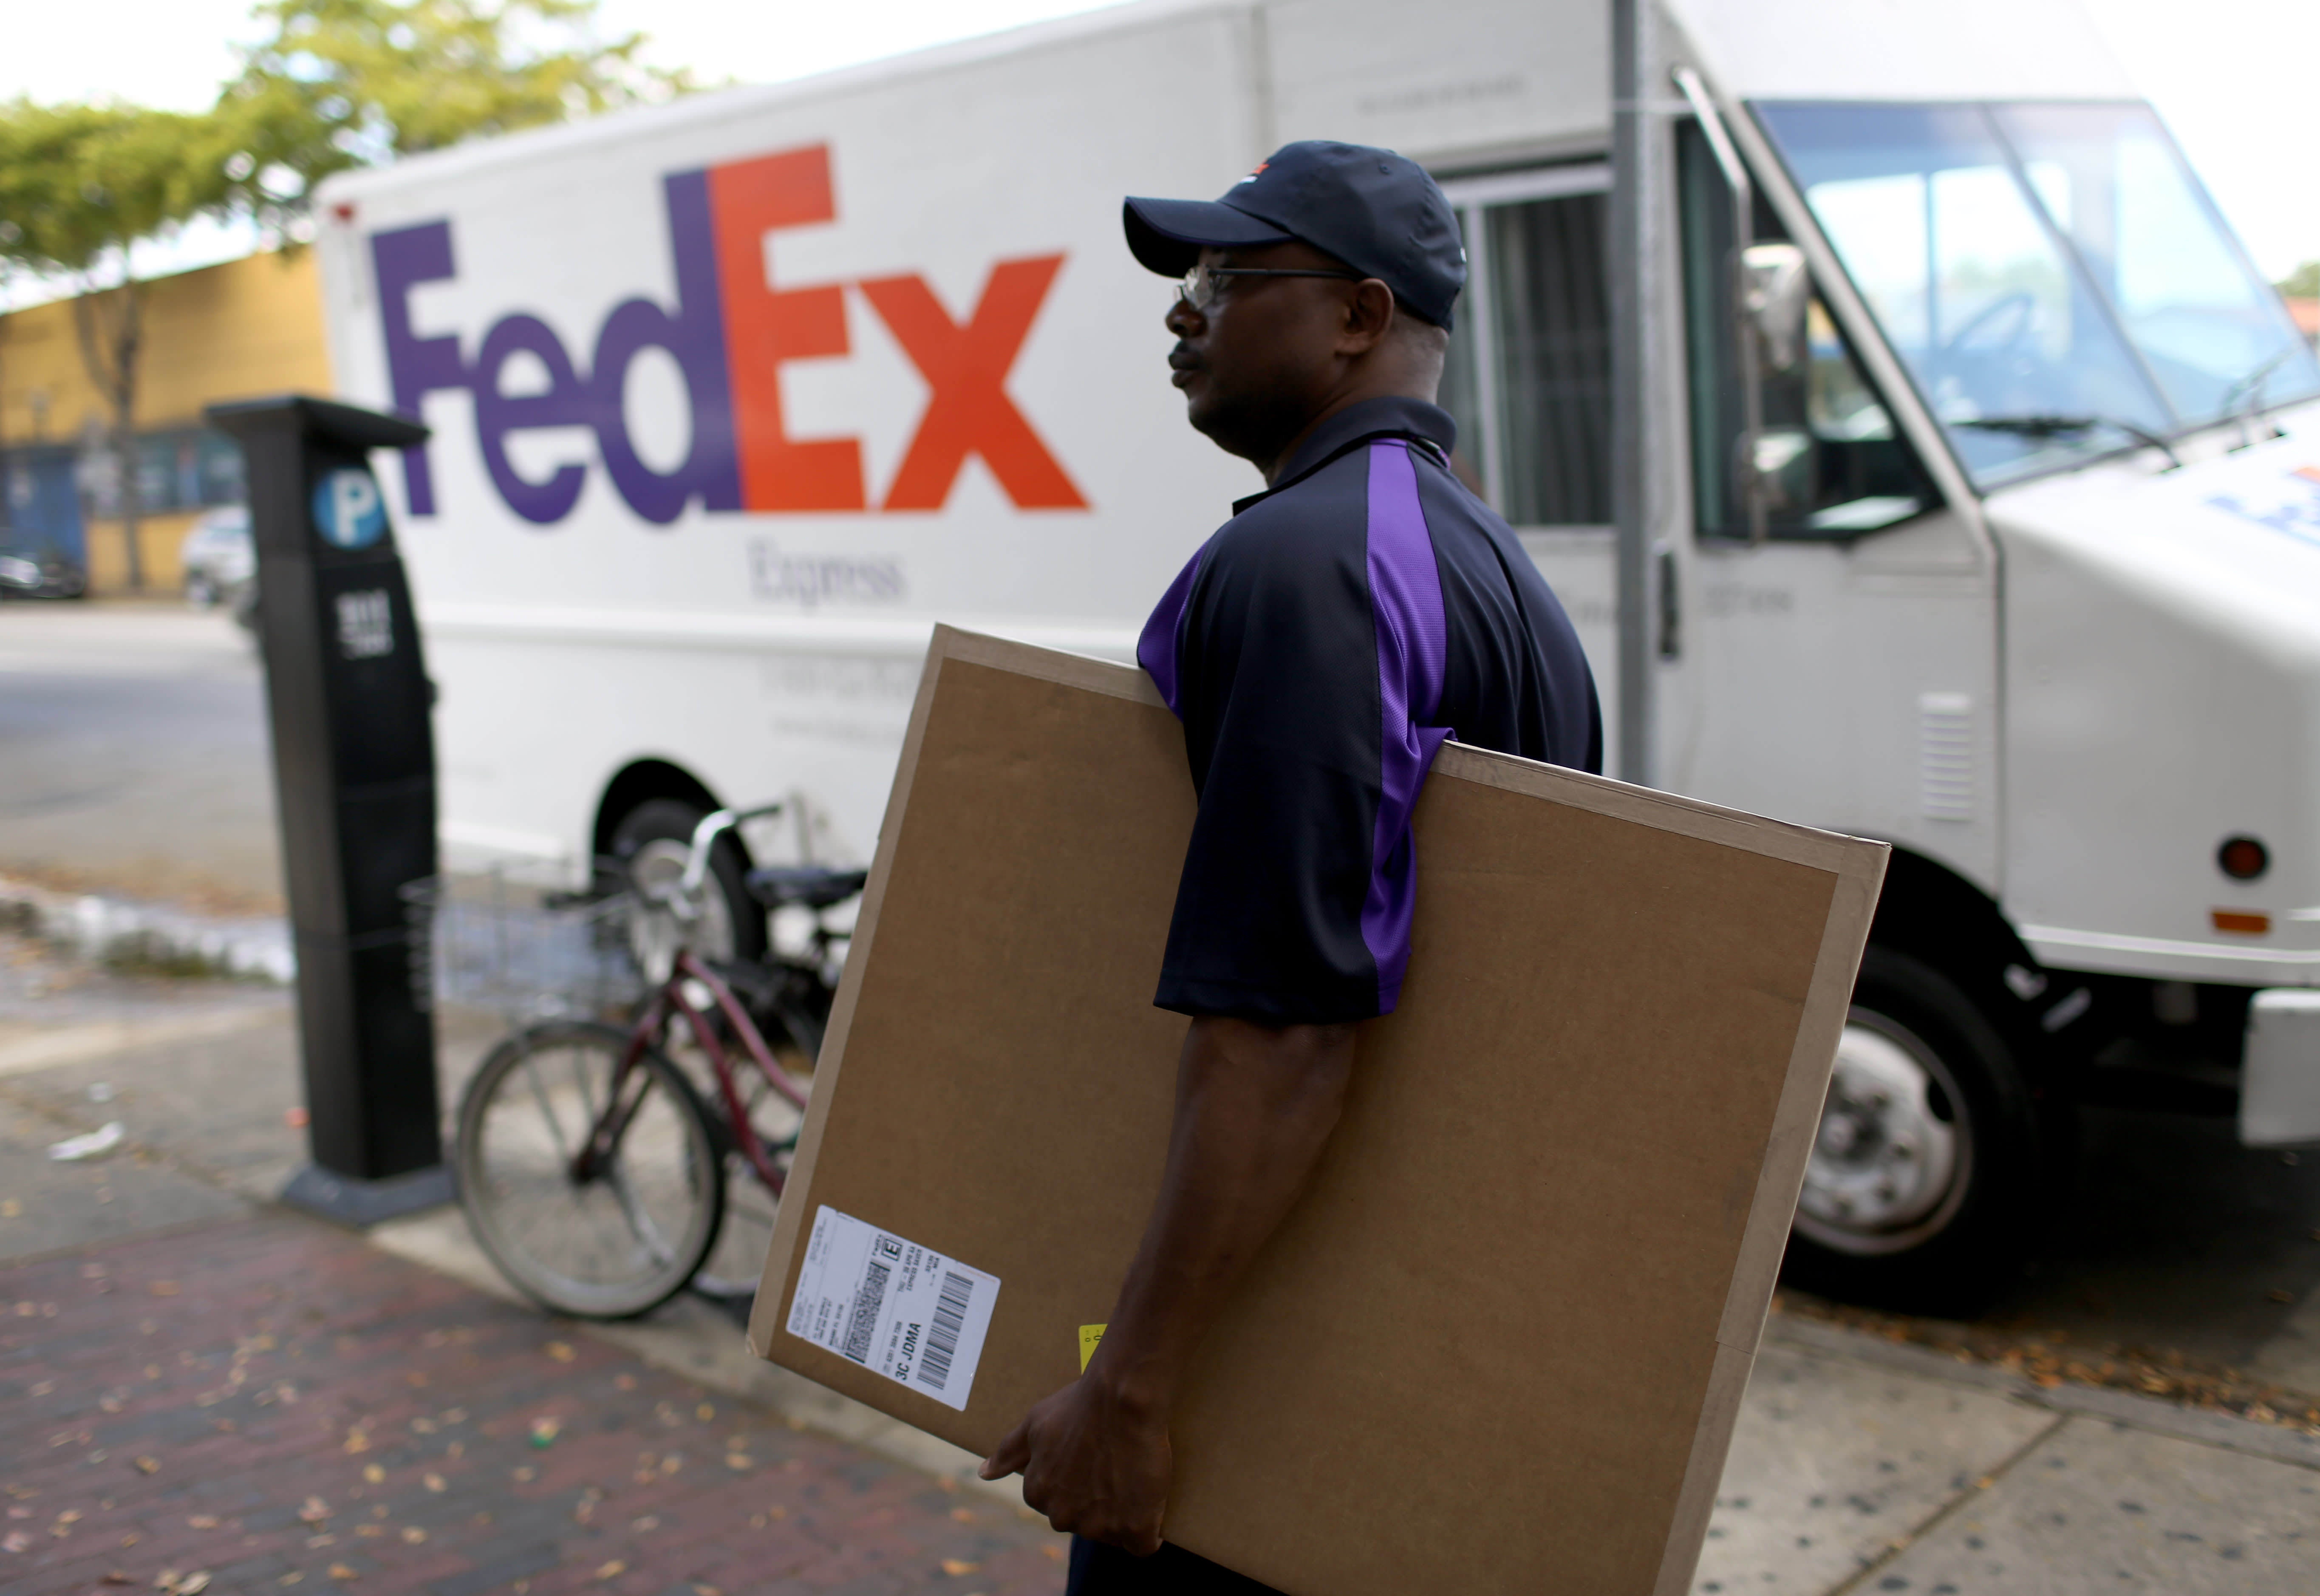 FedEx's threat: Rivals Amazon and Uber aim to slash its business